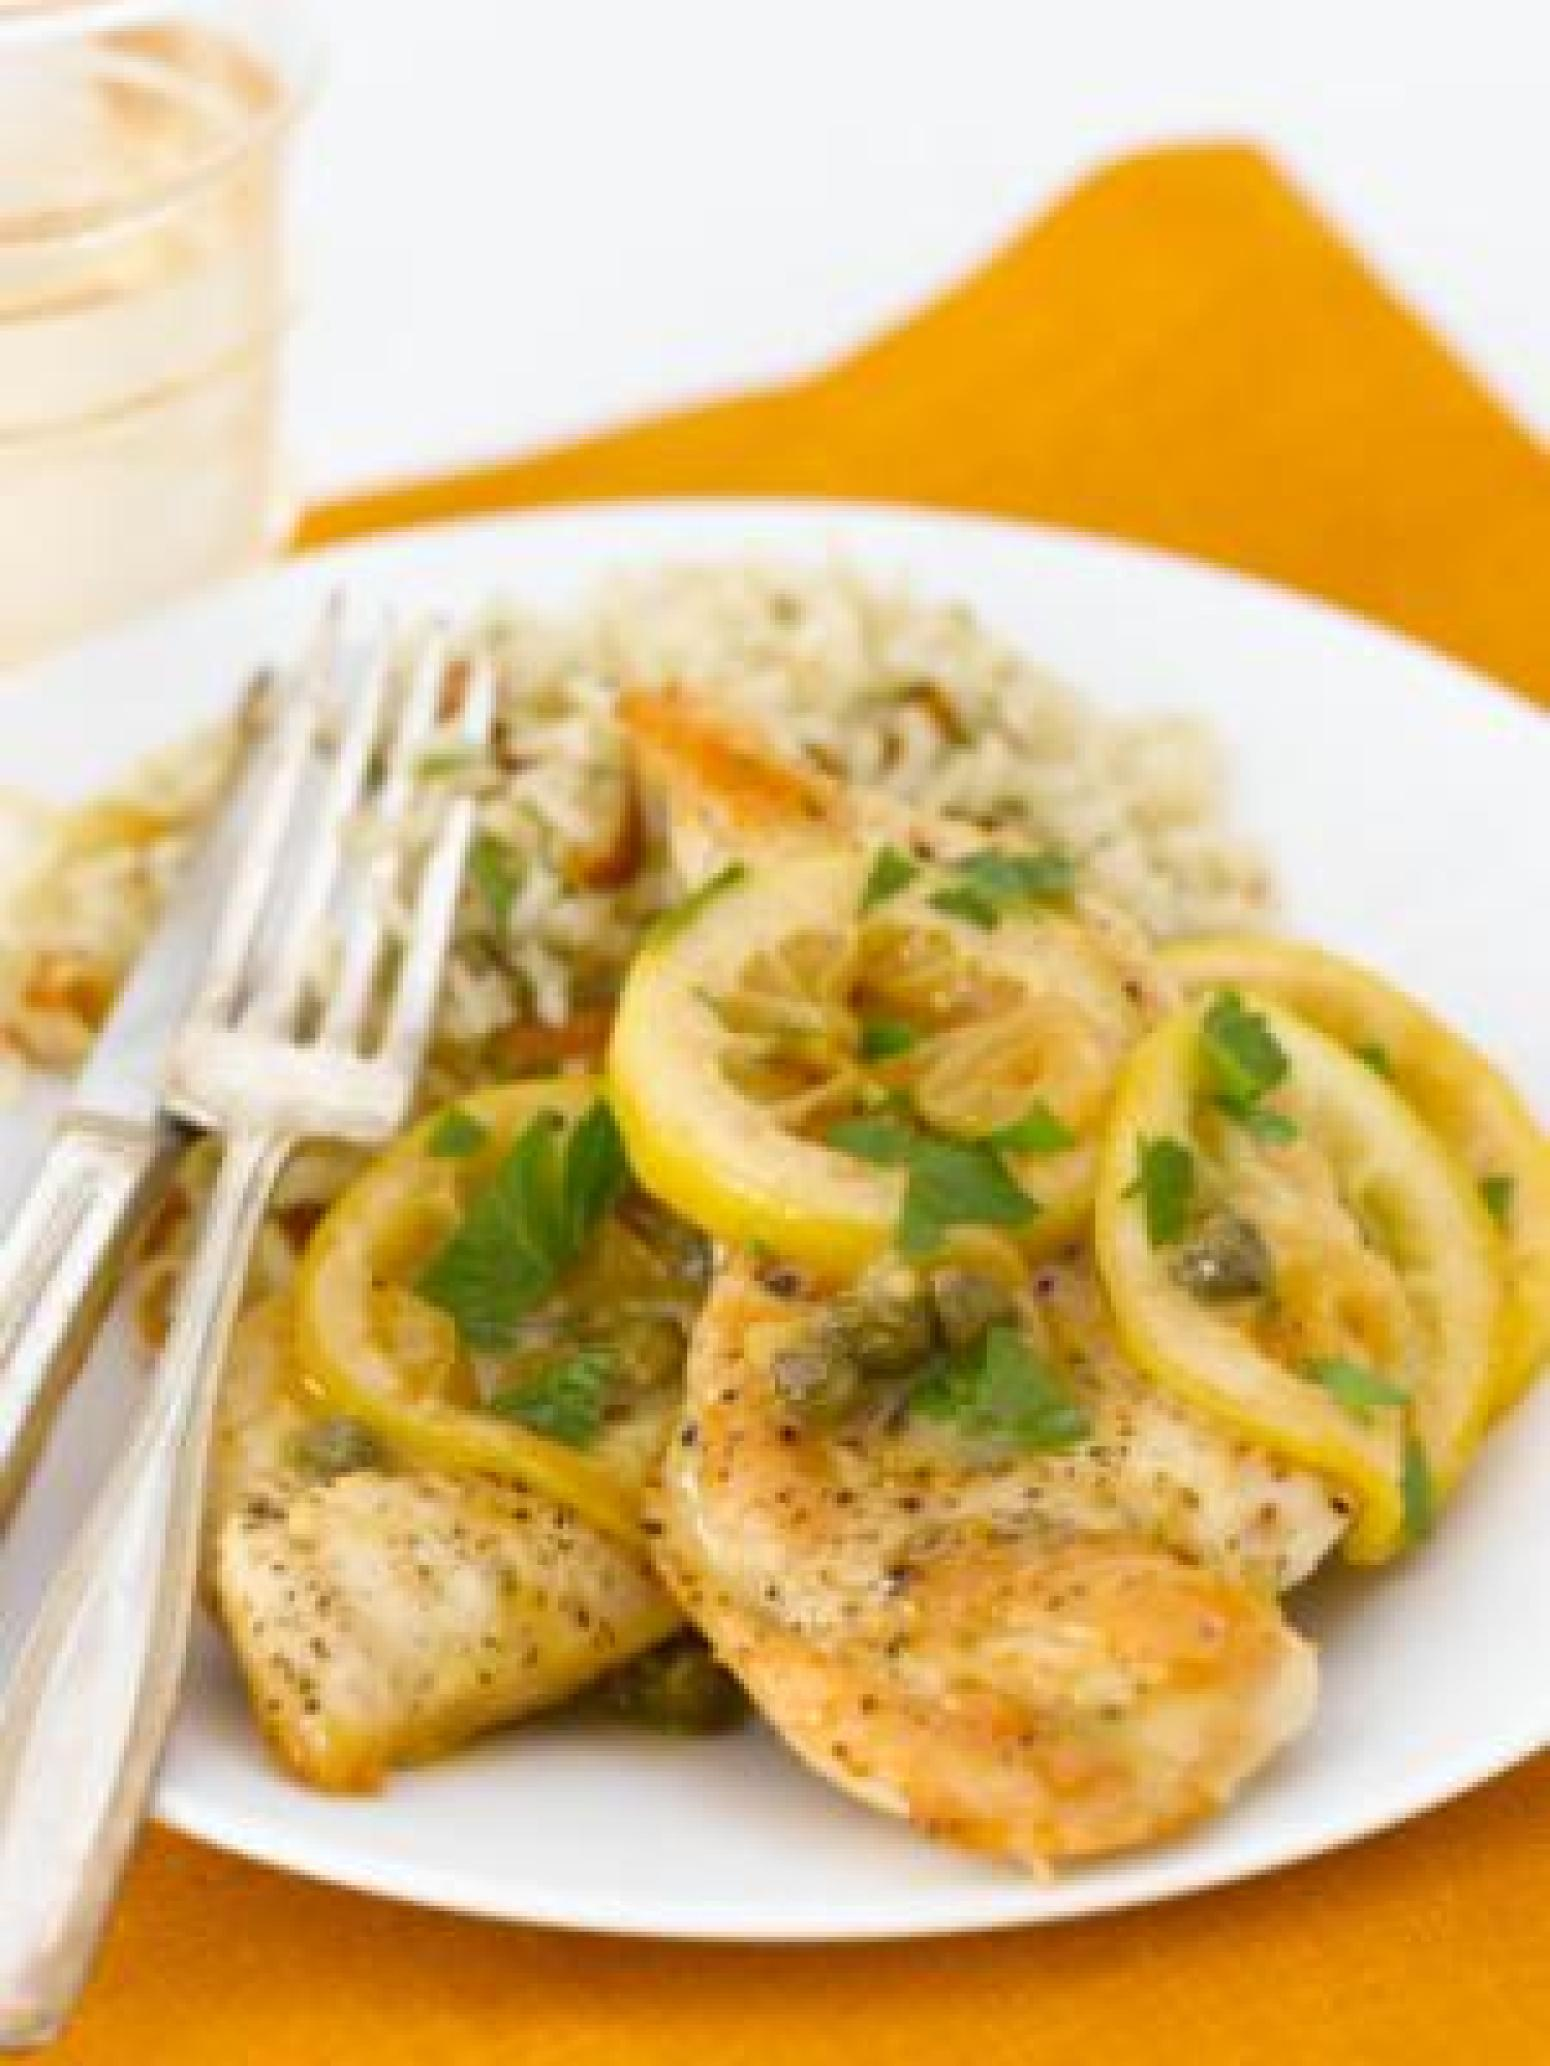 Feb 14,  · Slow Cooker Lemon Chicken is a simple dinner that can be started in the slow cooker first thing and you can come home to a delicious dinner! Lemon Chicken is just the ticket for a tasty meal that won't leave you feeling guilty for overindulging! I decided I didn't want to be tempted by having /5(24).